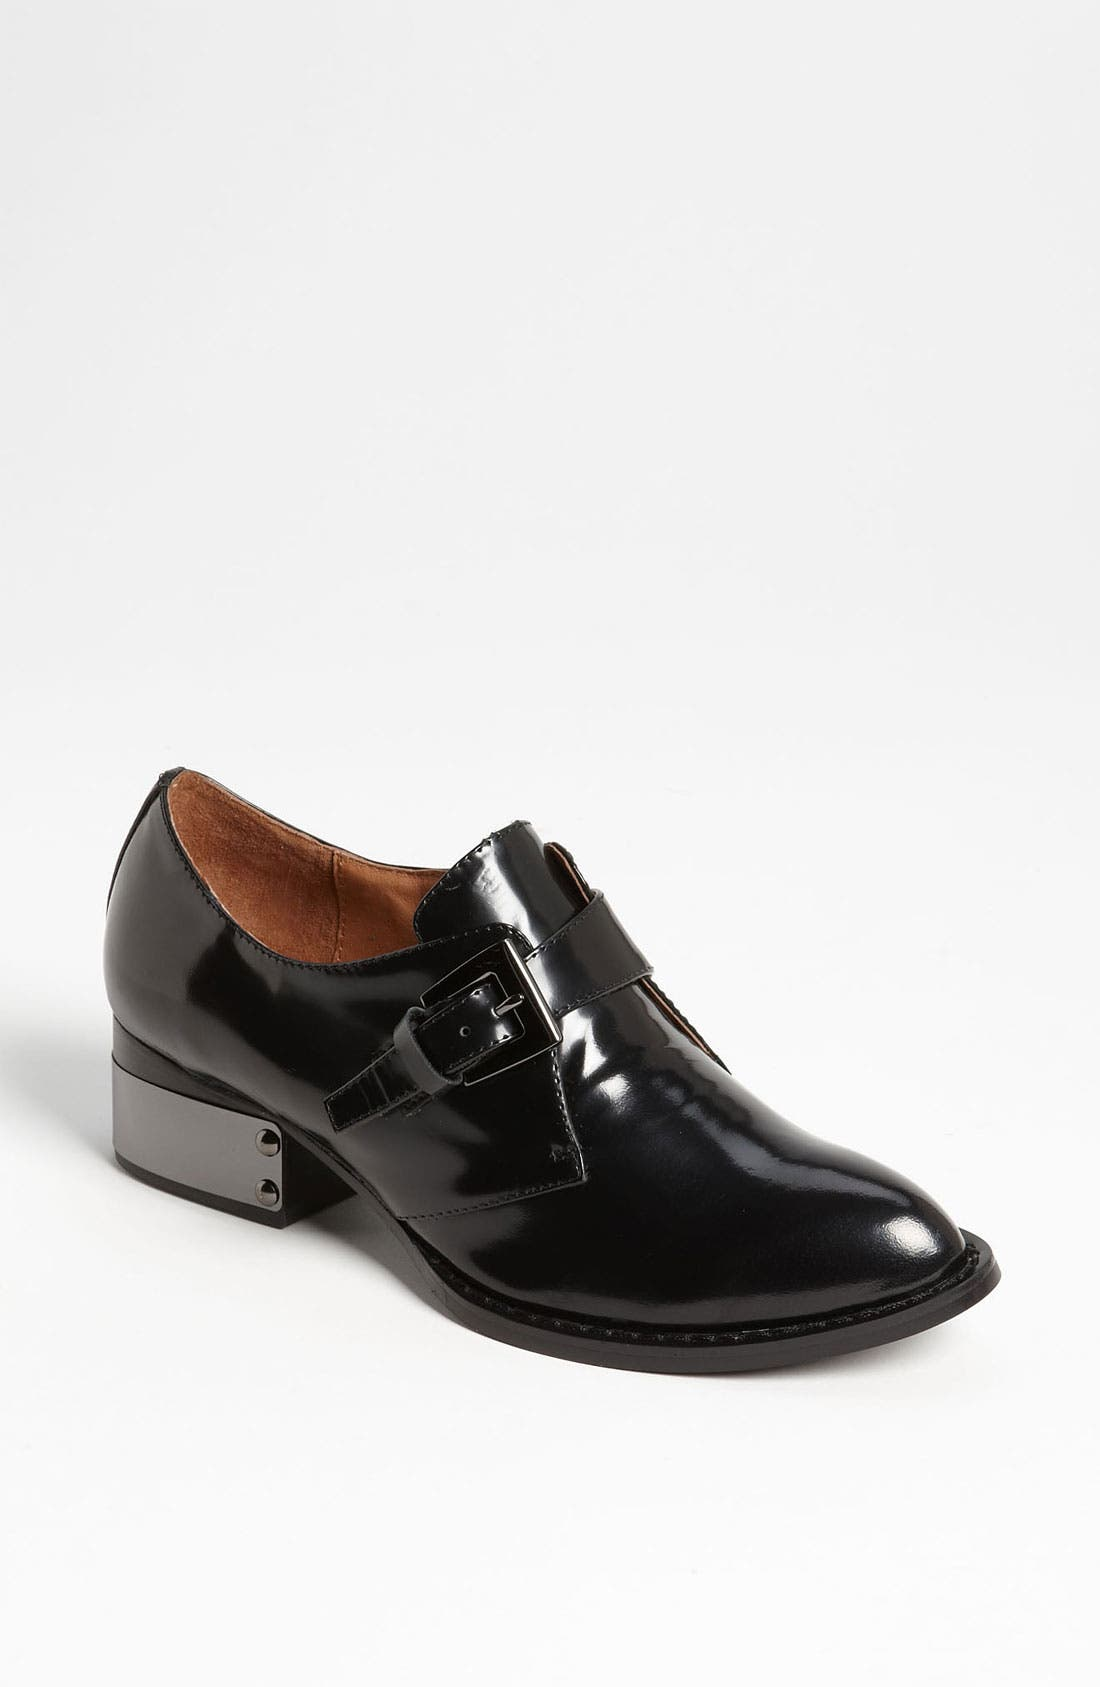 Alternate Image 1 Selected - Jeffrey Campbell 'Holmby' Oxford